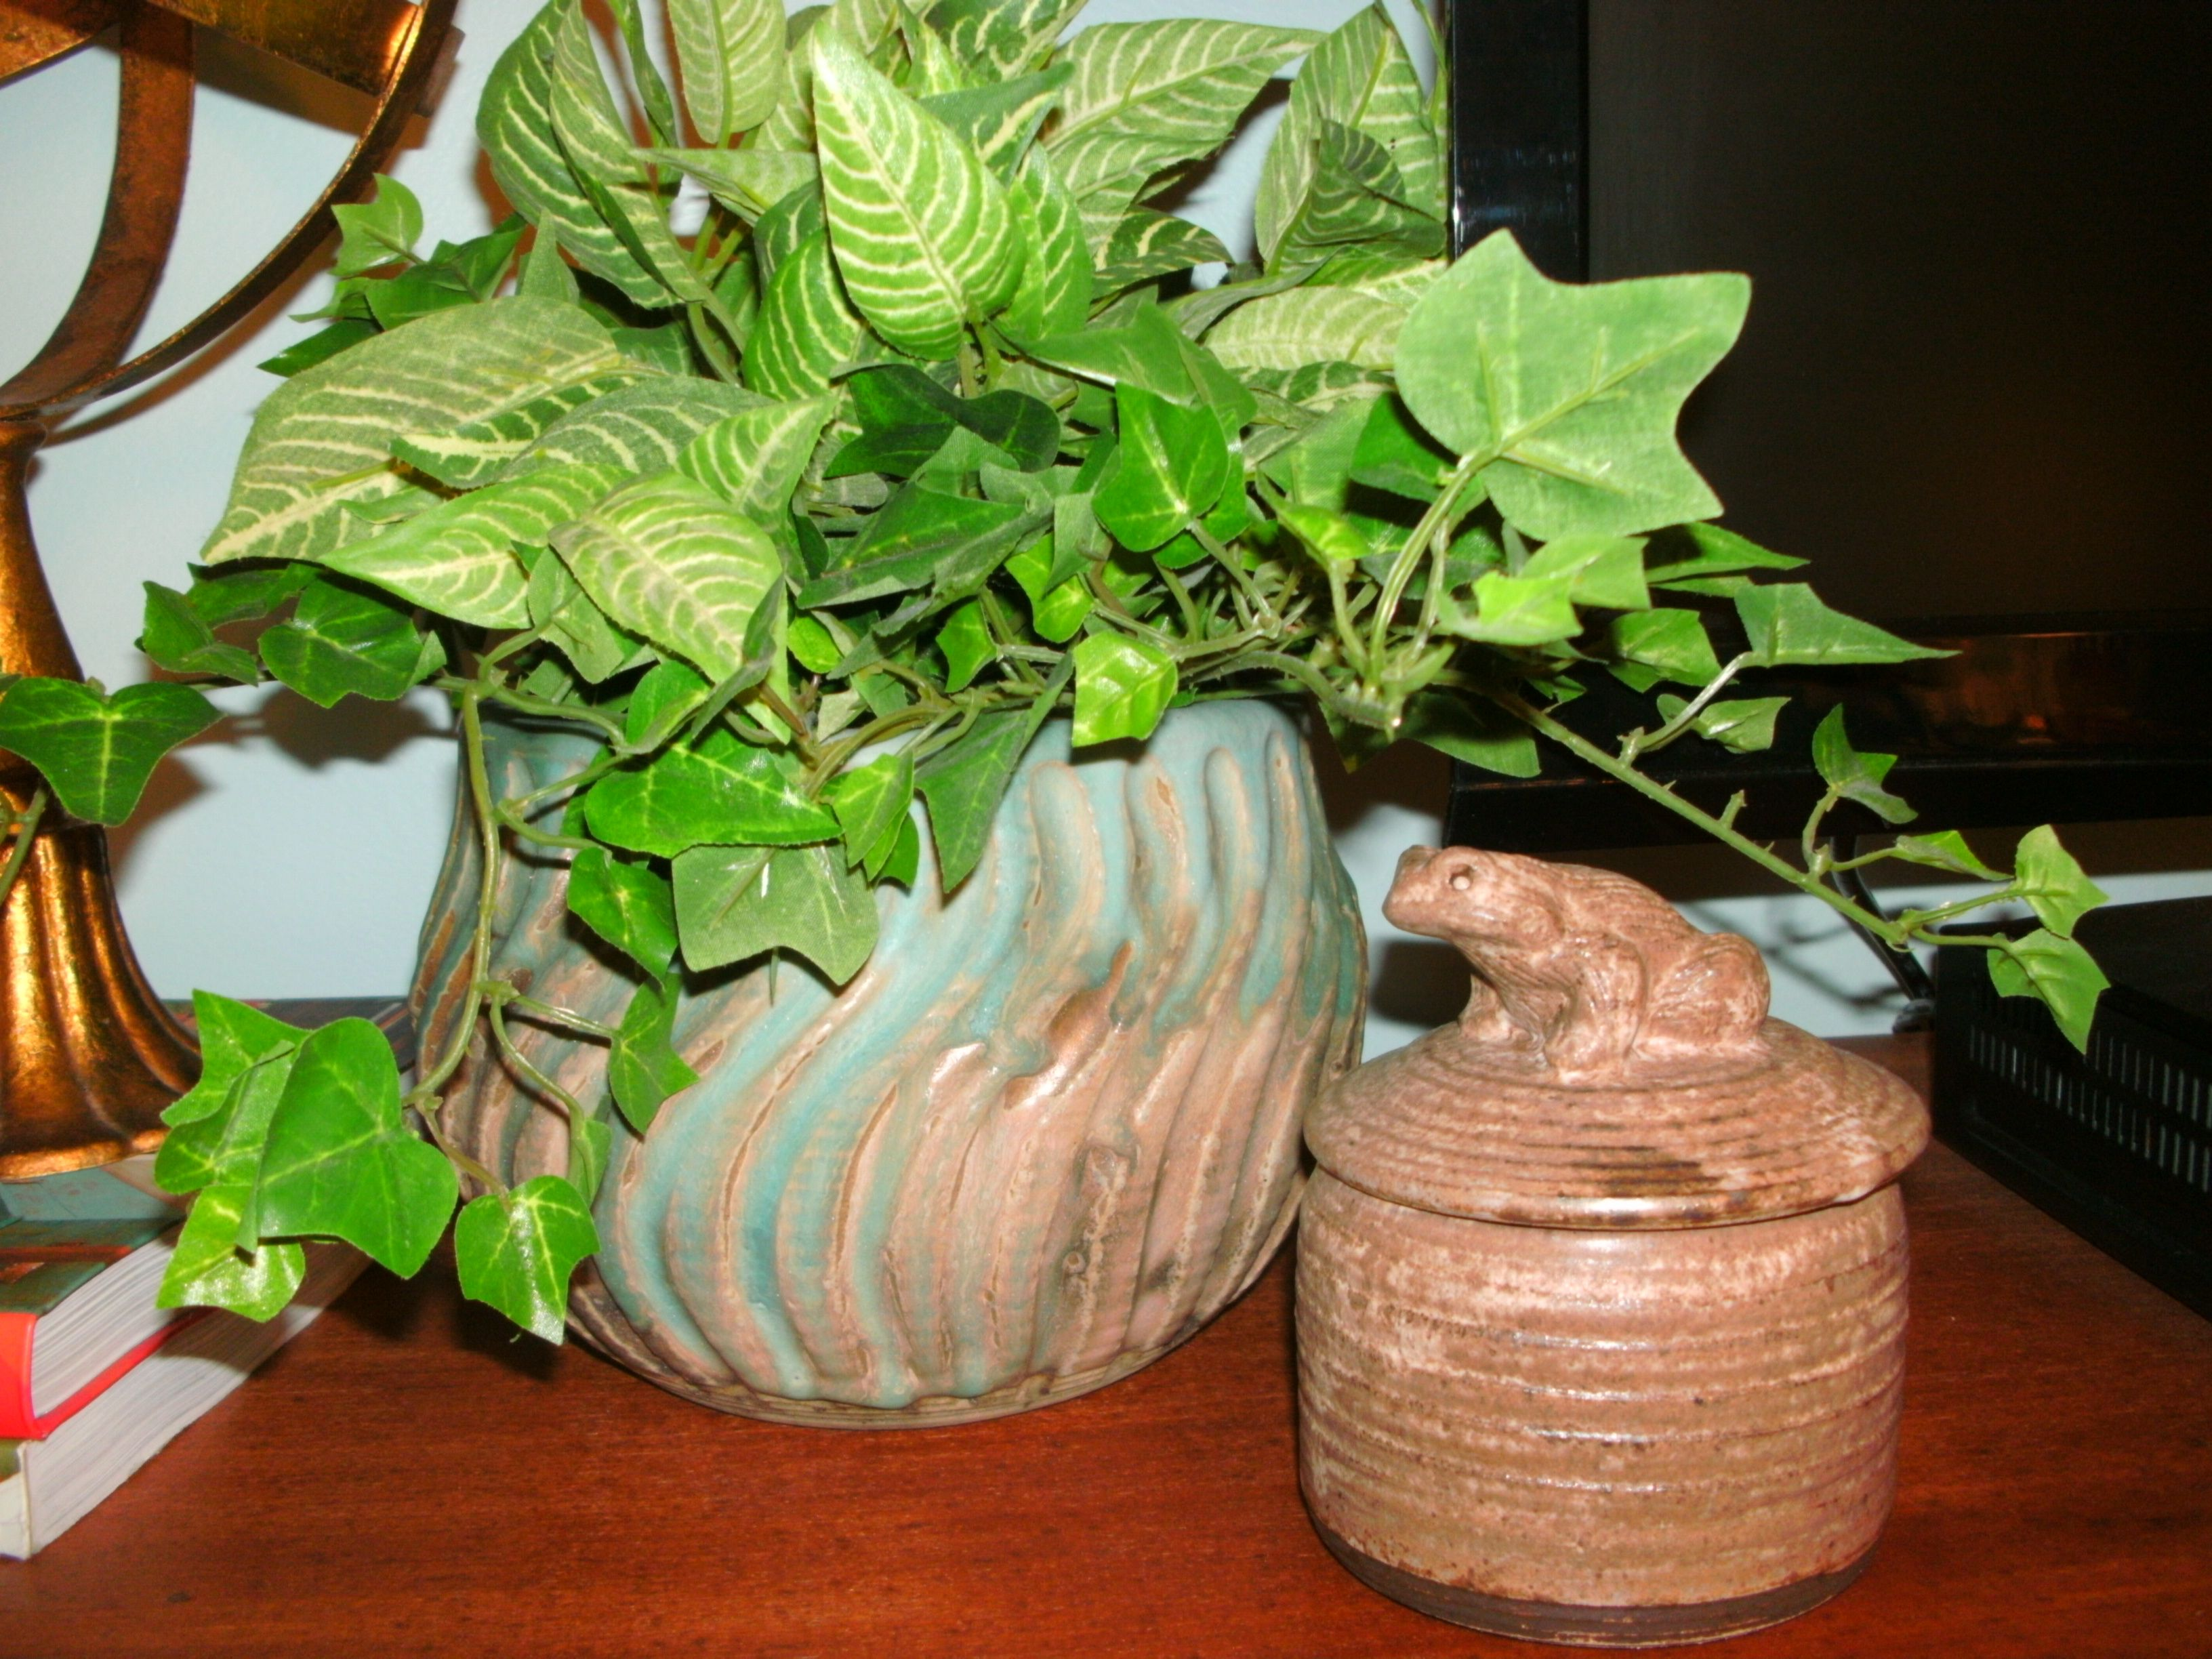 McCarty pottery mum pot and peter's pottery candy dish.